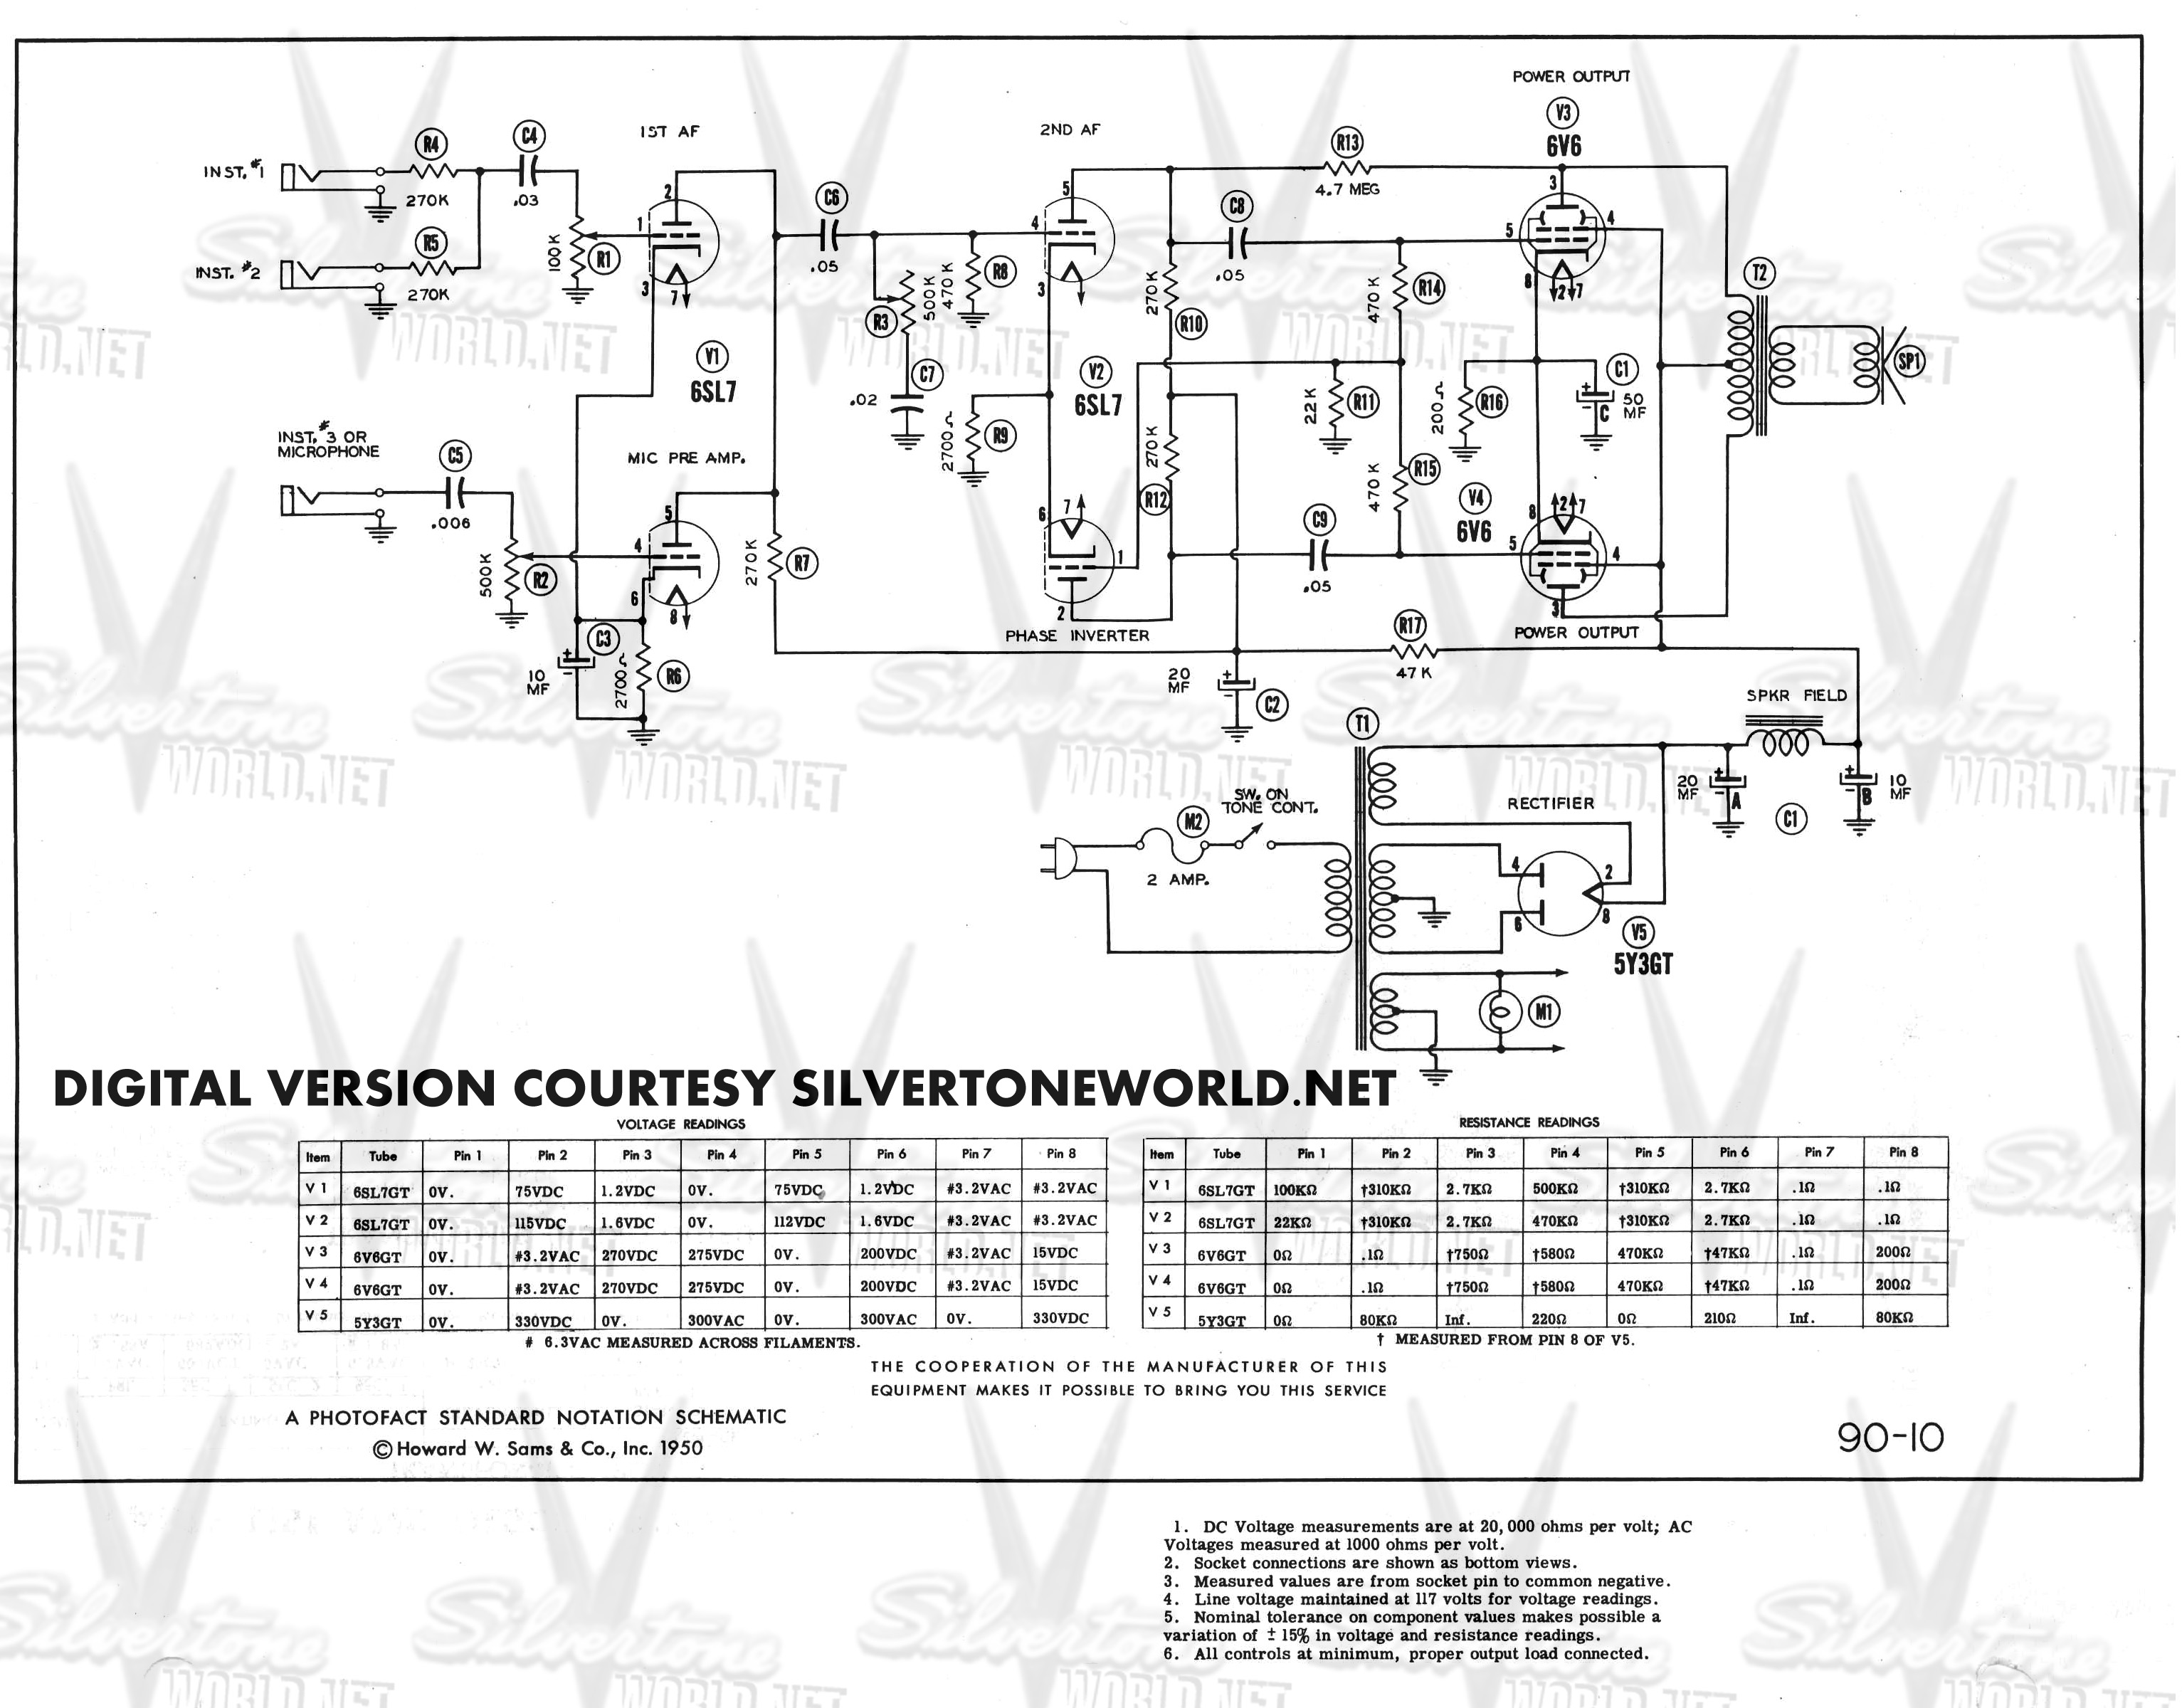 guitar wiring diagrams pdf silver tone guitar wiring diagrams silvertone world - division 57 - schematics, manuals and ...